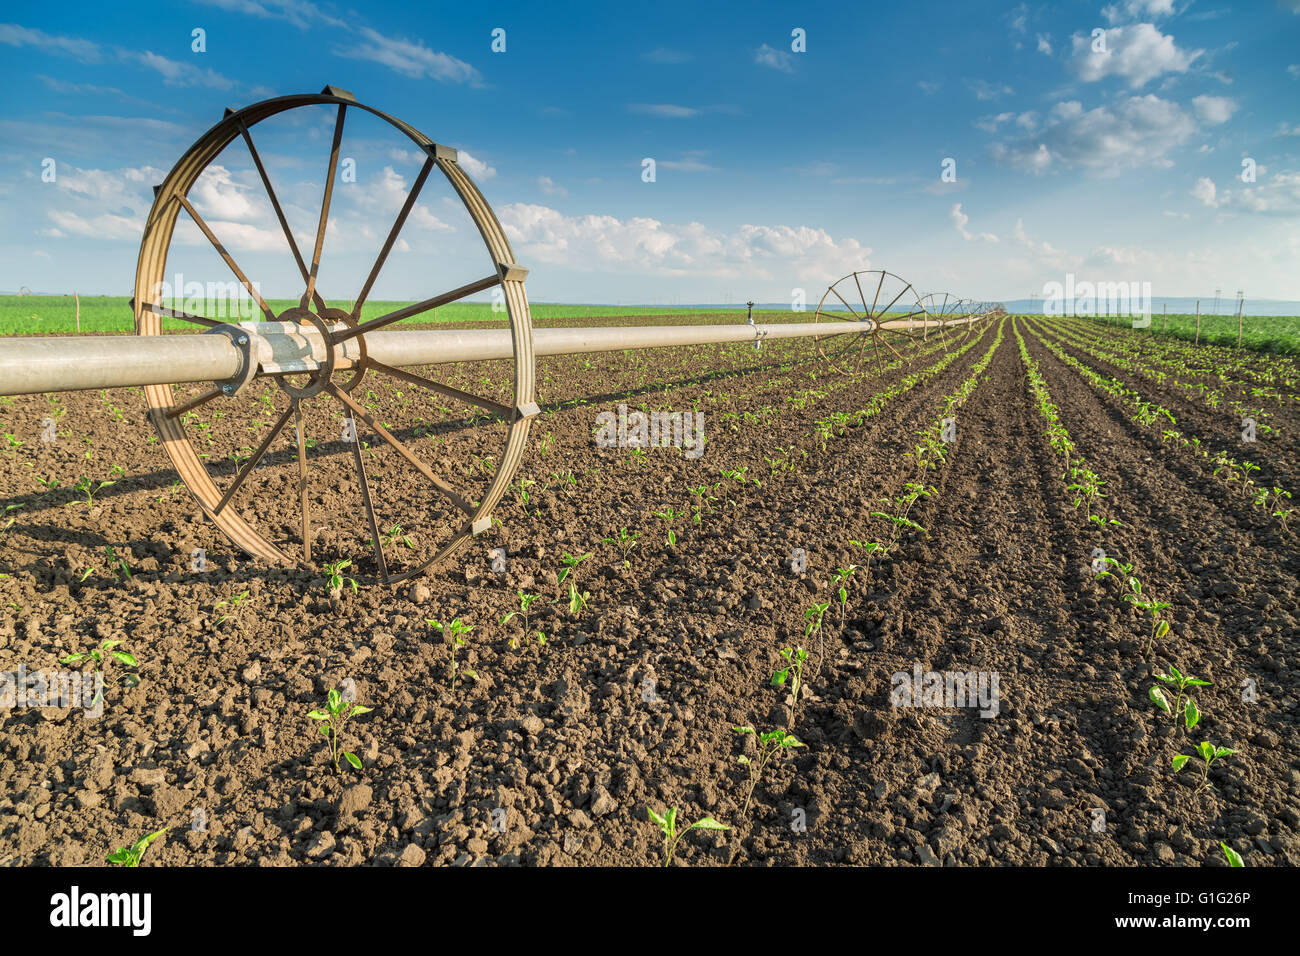 Paprika field with irrigation system - Stock Image